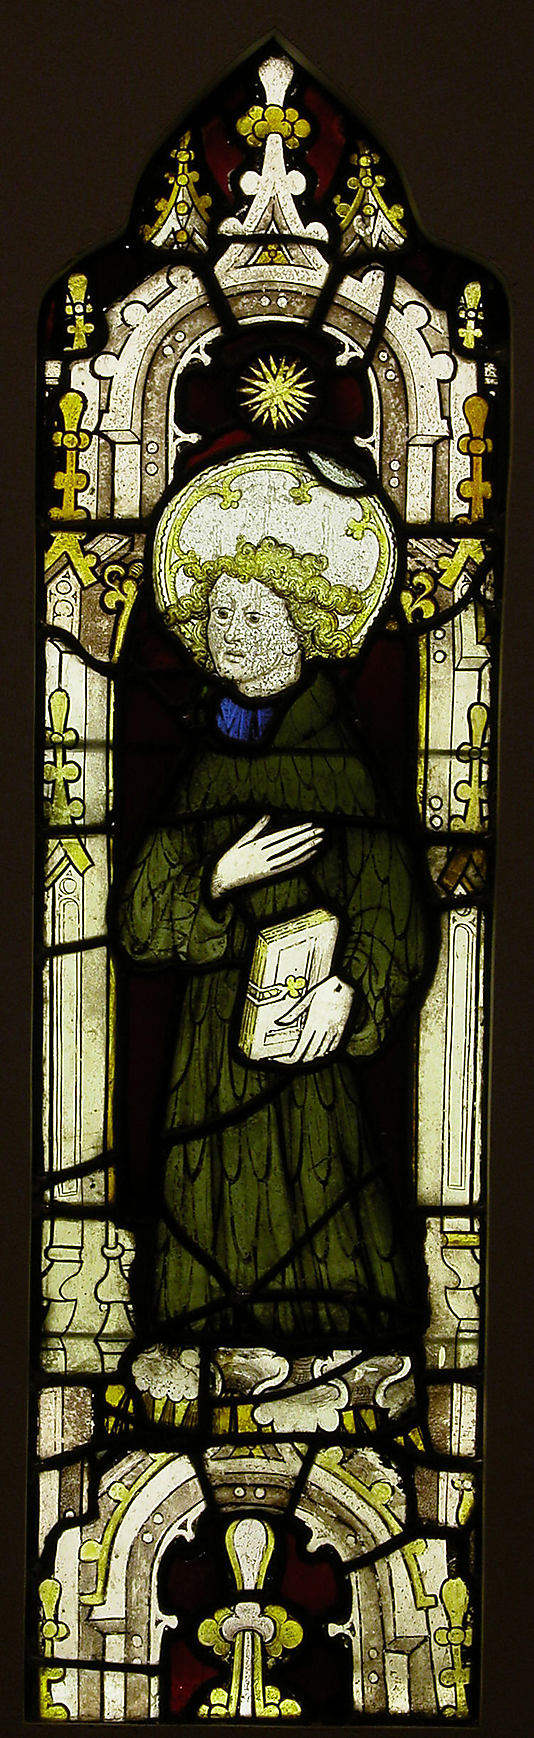 Stained Glass Panel with an Angel. Date: ca. 1450. England.